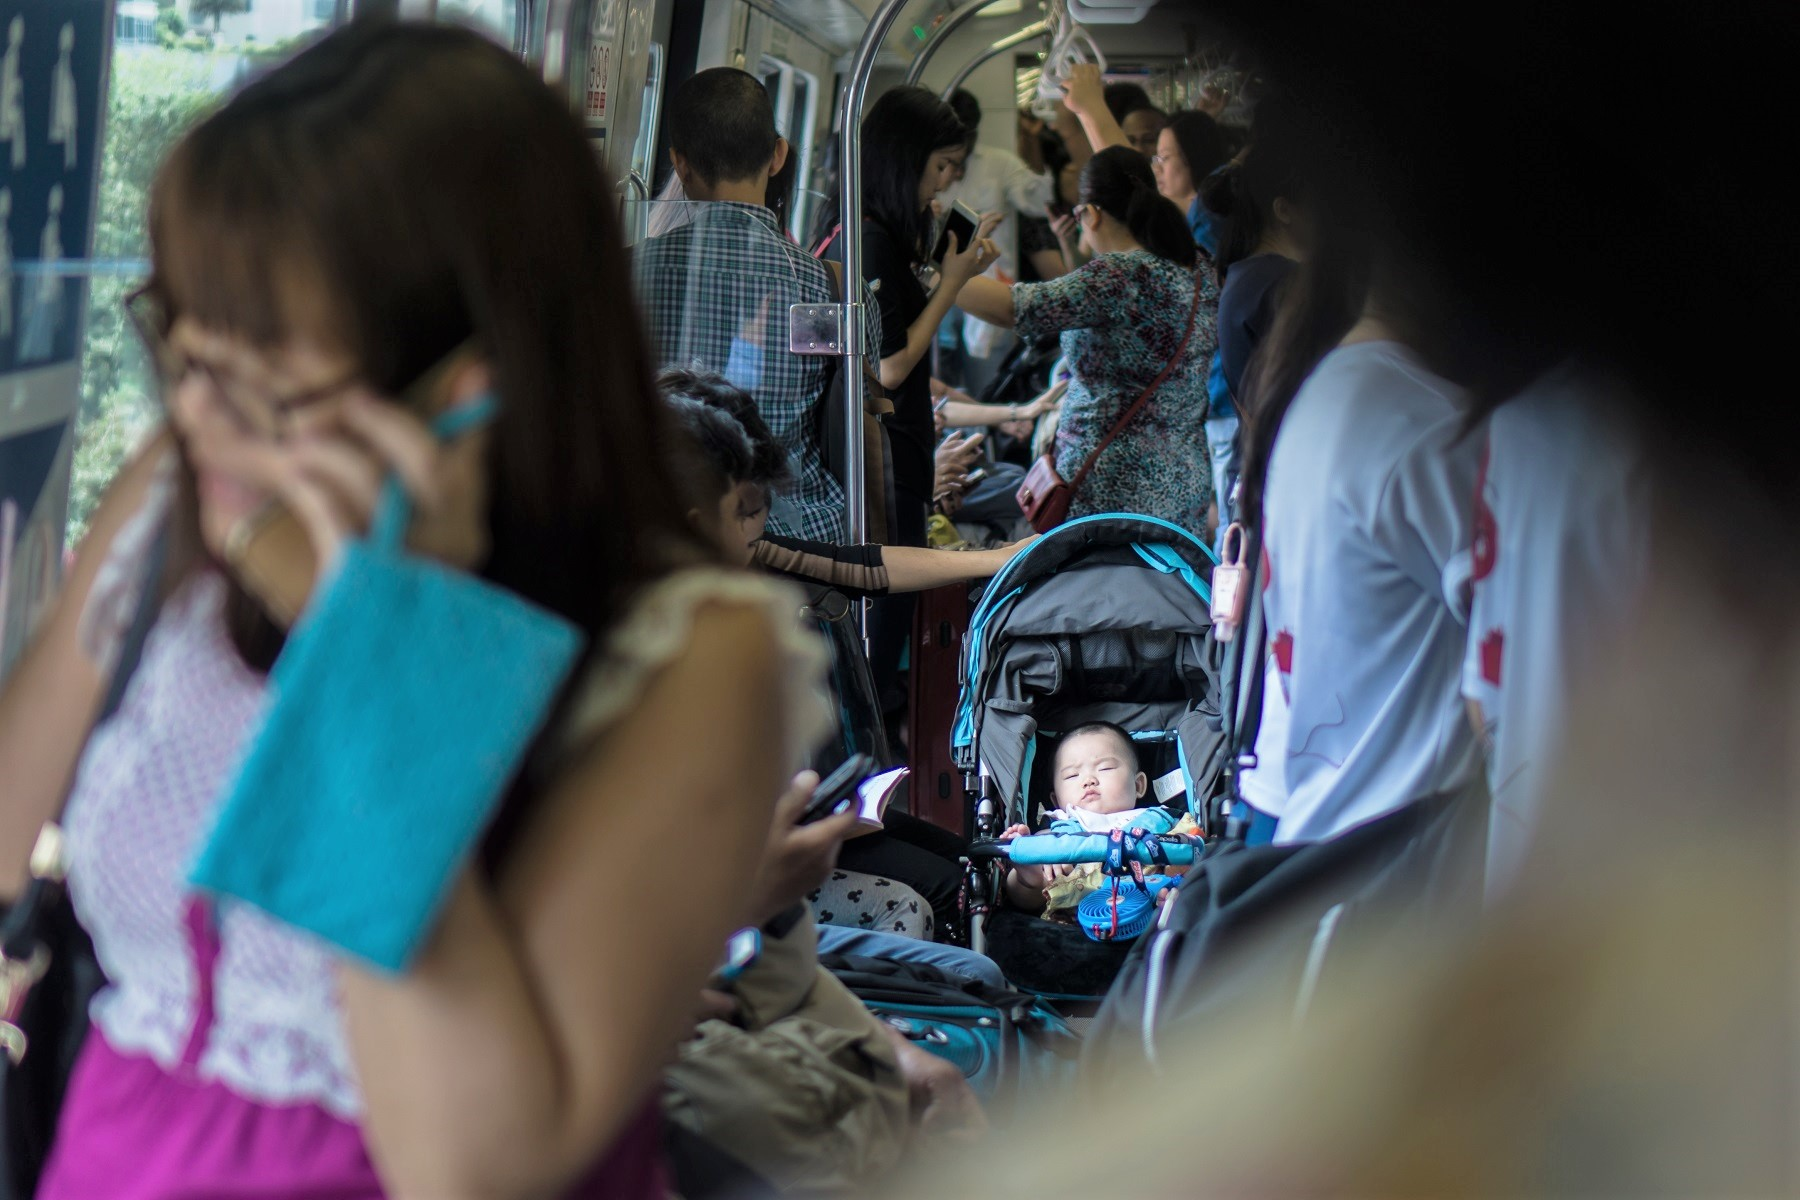 Asian Baby In Stroller Alone on Crowded Train